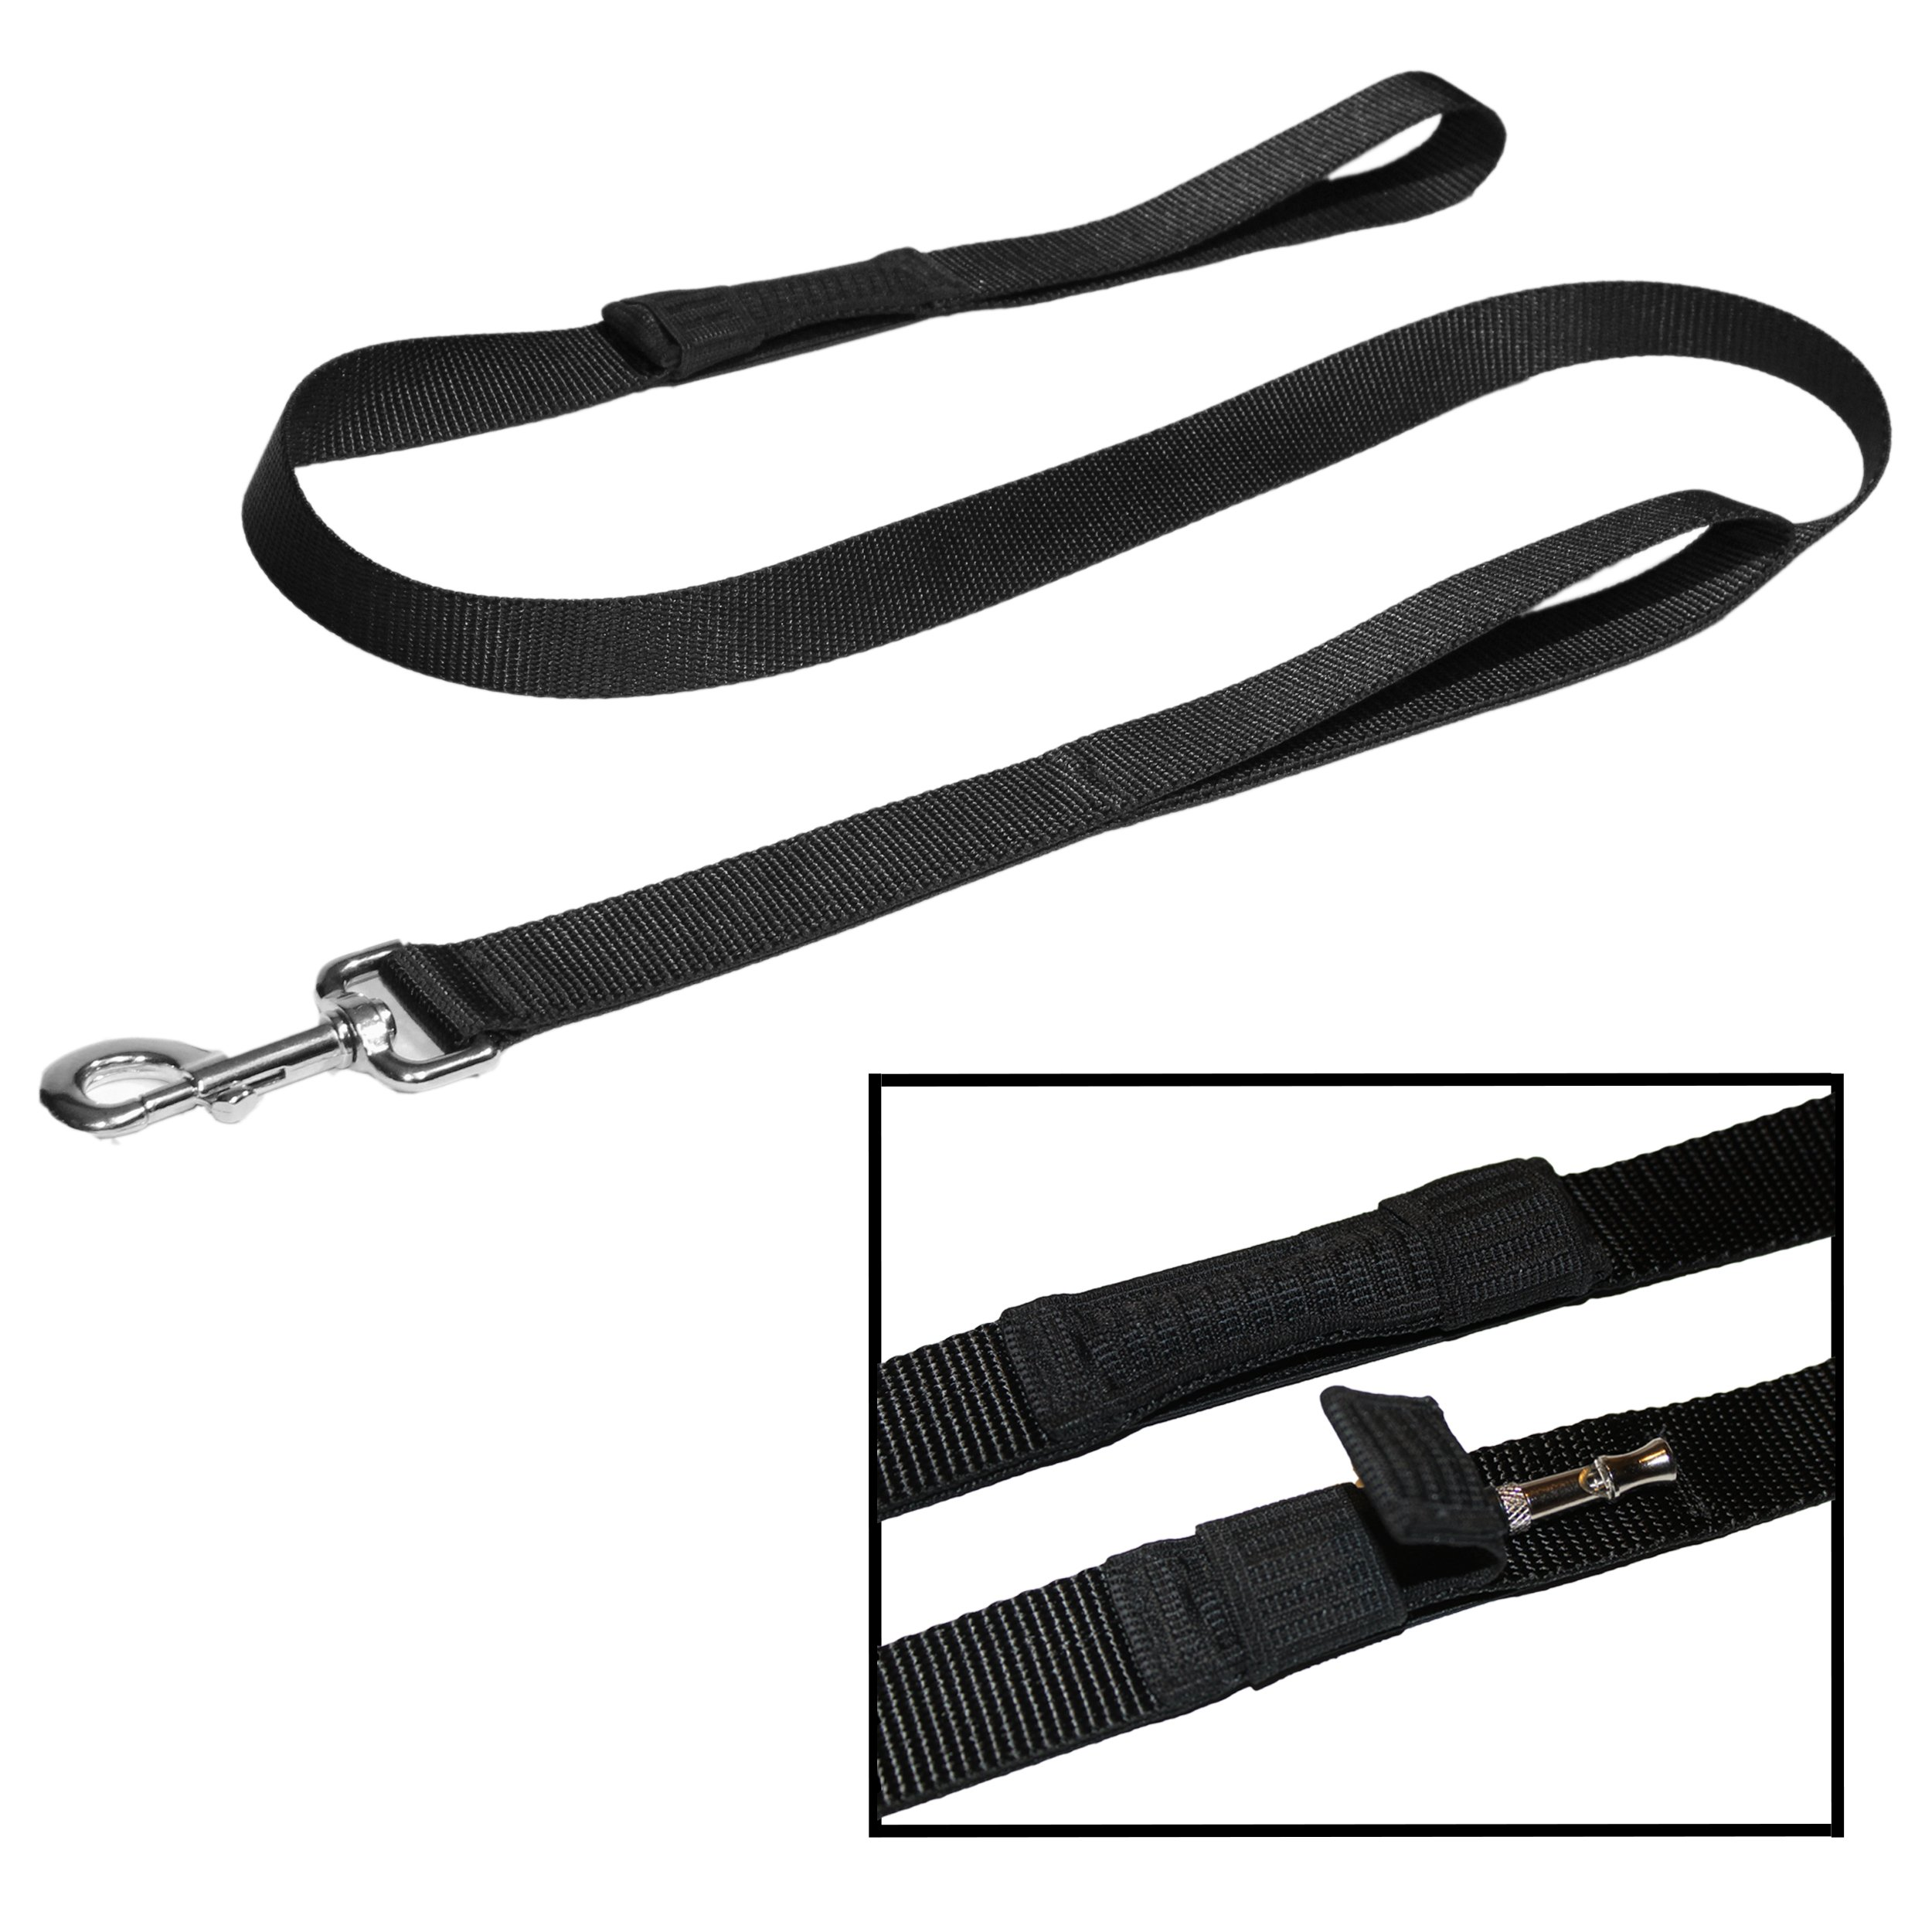 TugMutt DOG WHISTLE LEASH   A Leash with an Integrated Dog Whistle   Make your Dog Come to you Every Time   Training Guide Included   2 Handle Leash (4 ft.)